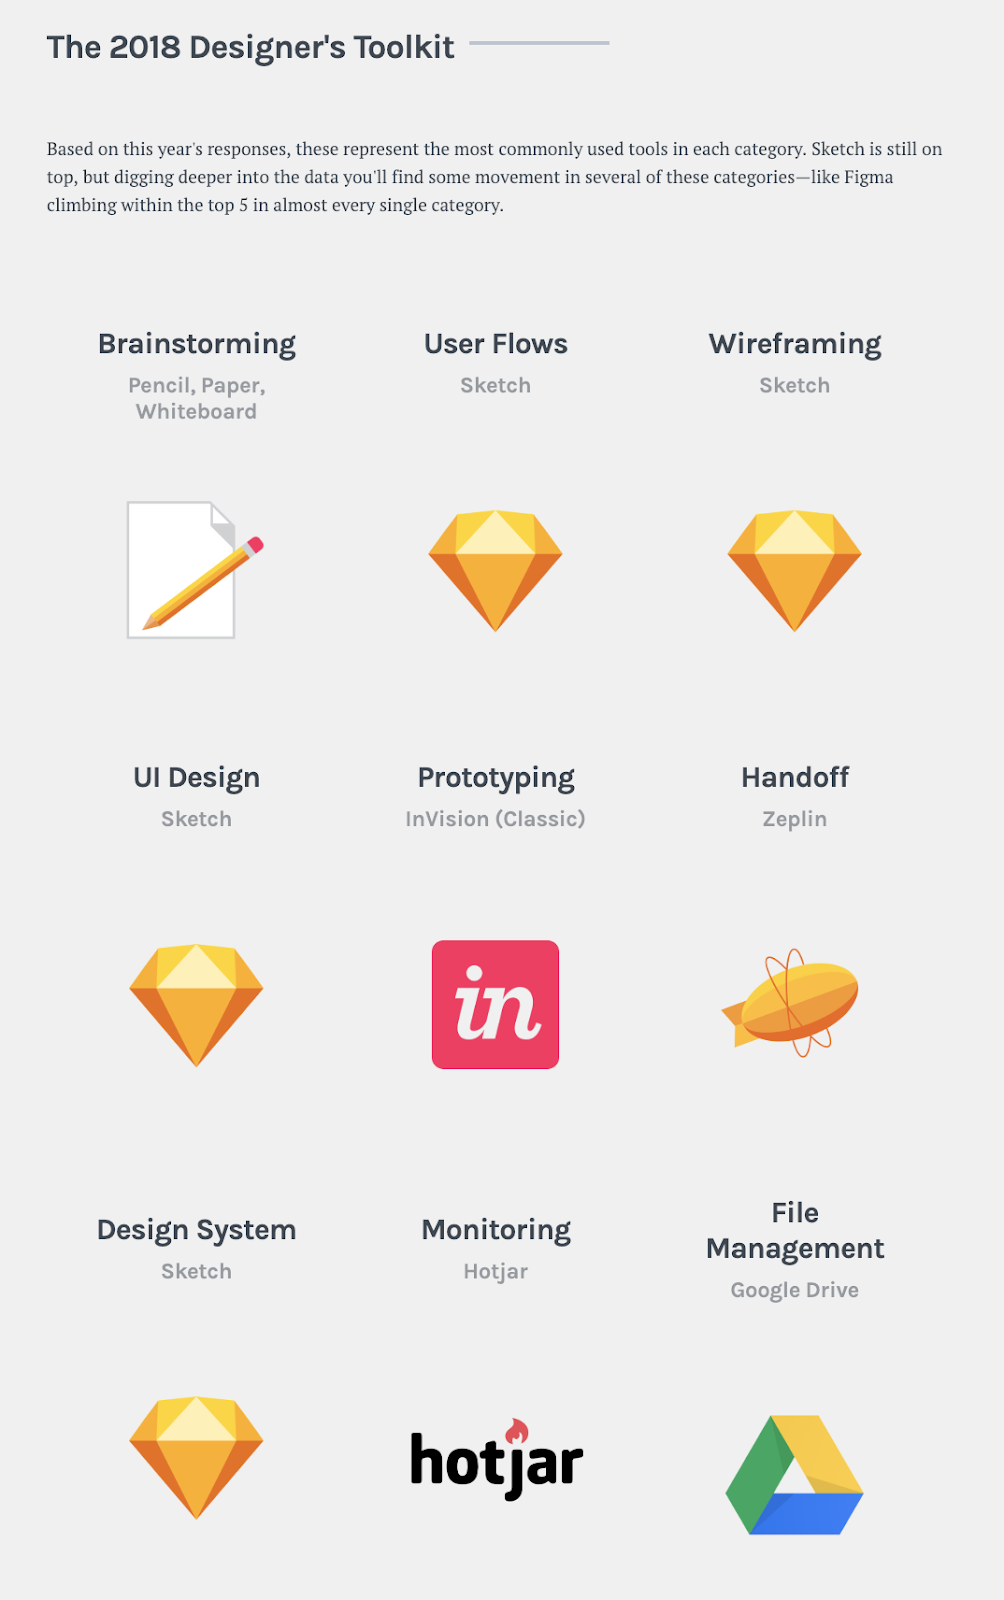 This is a screenshot of UX Tools' 2018 designer toolkit showing the most popular and best ux designer tools for user flows, wireframing, ui design, design systems (sketch), prototyping (invision), handoff (zeplin), monitoring (hotjar), and file management  (google drive)